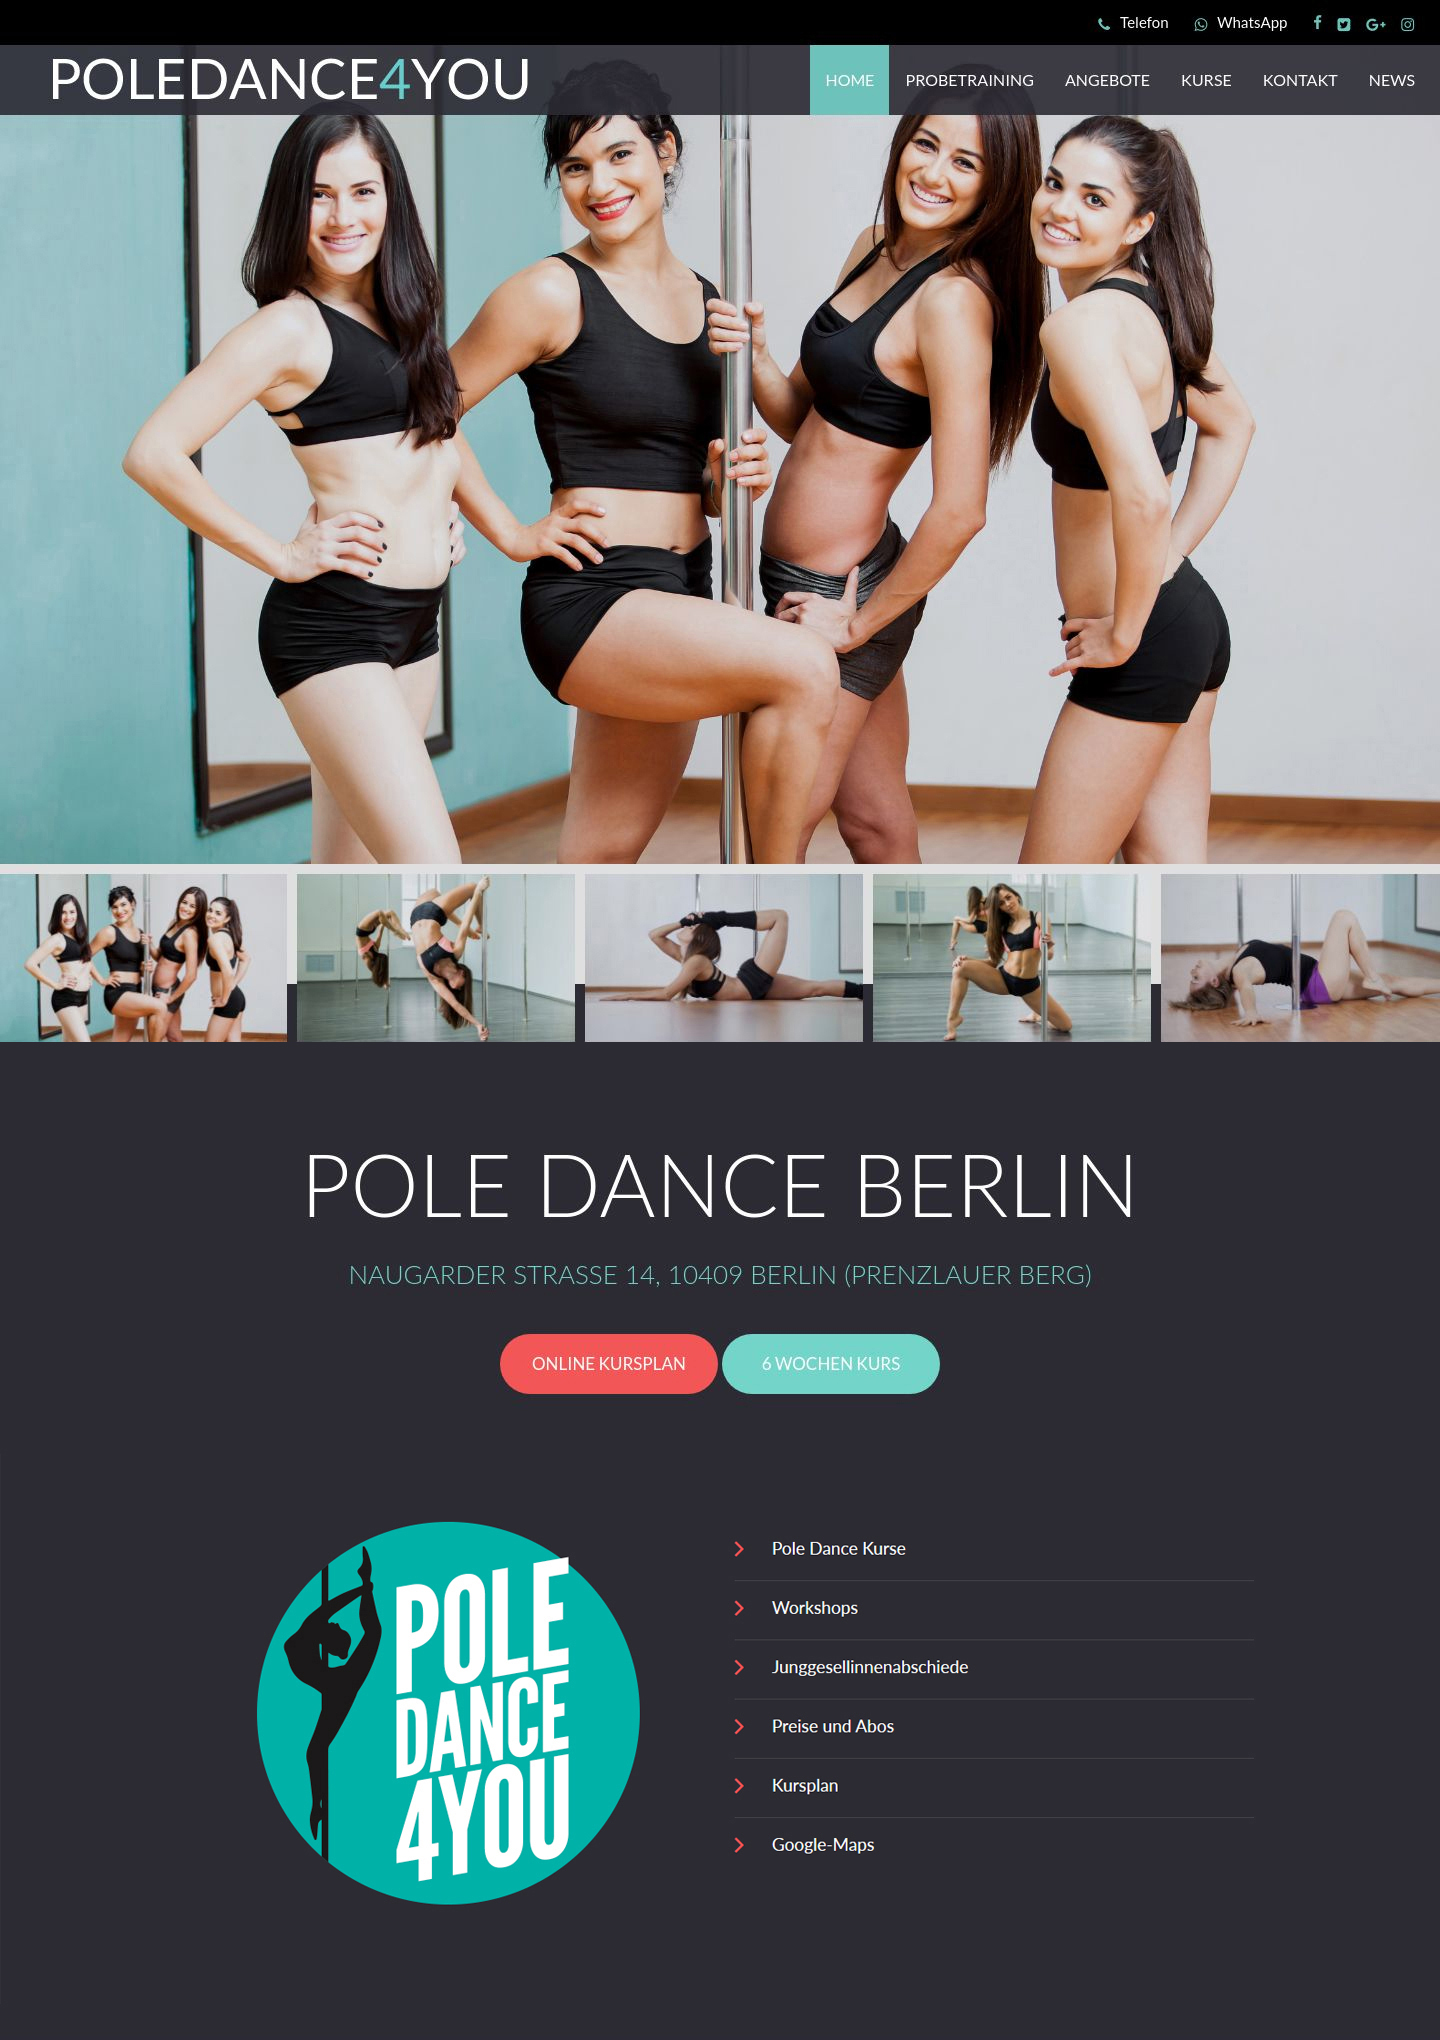 Poledance 4 You » Website Erstellung by J.R. Foto, Web & Design